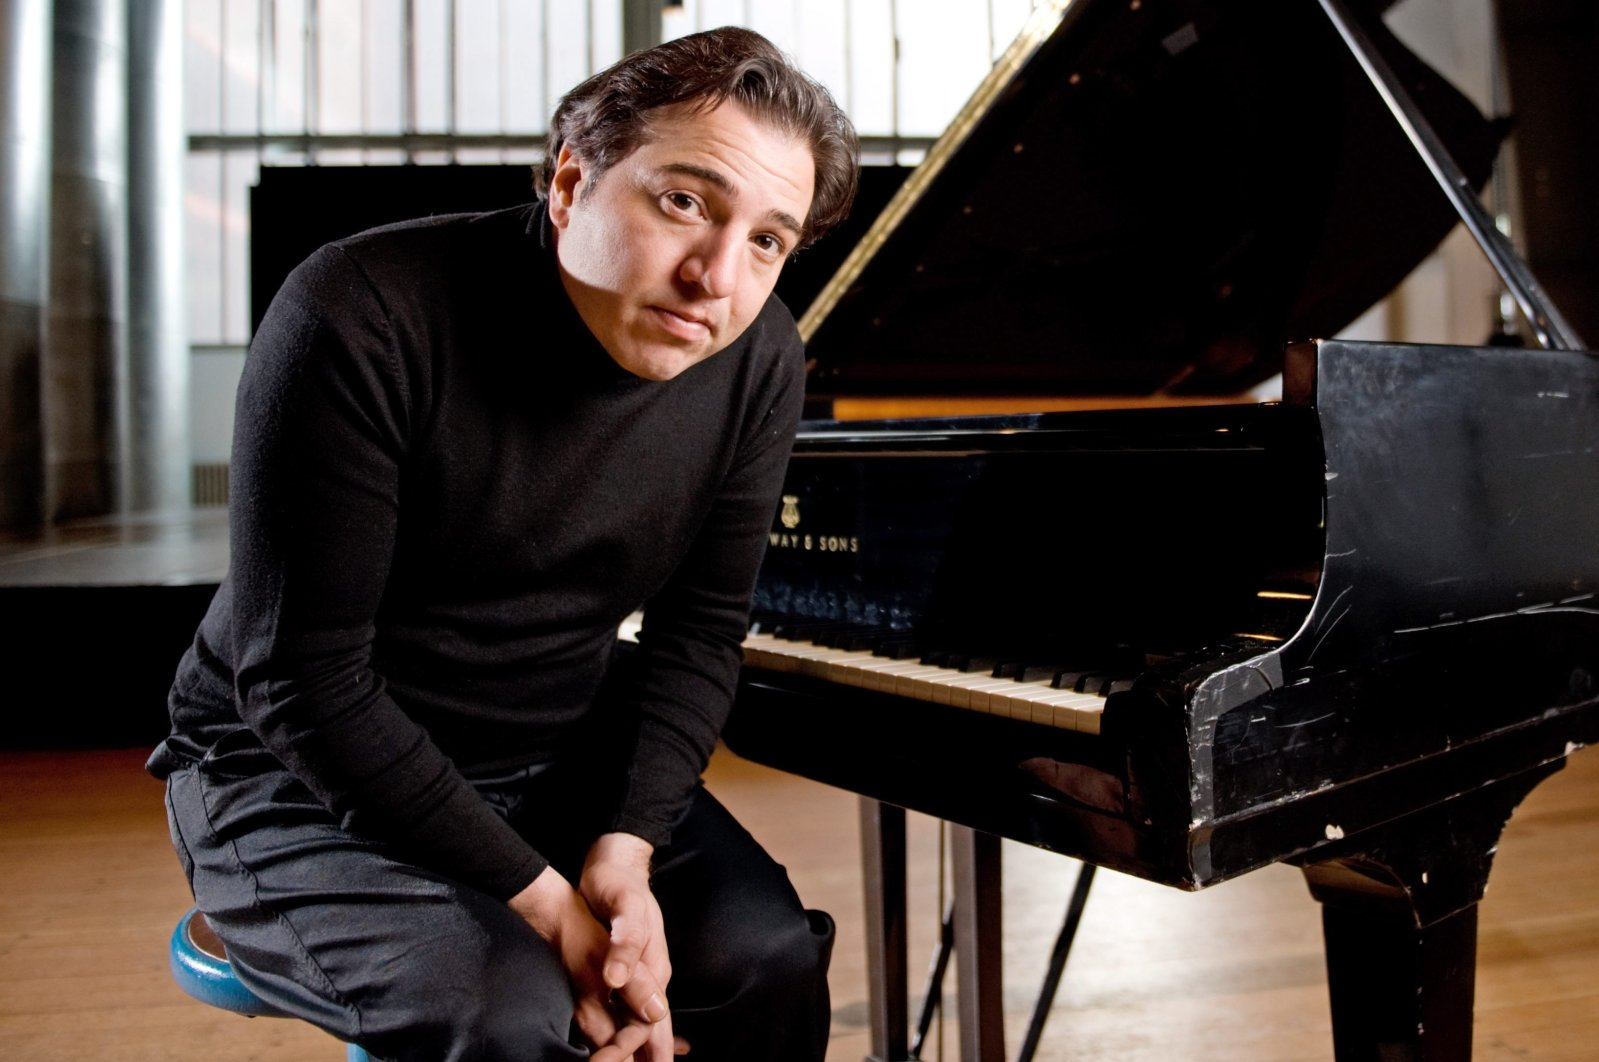 Turkish pianist Fazil Say poses in front of a piano, Essen, Germany, Feb. 3, 2010 (AFP)